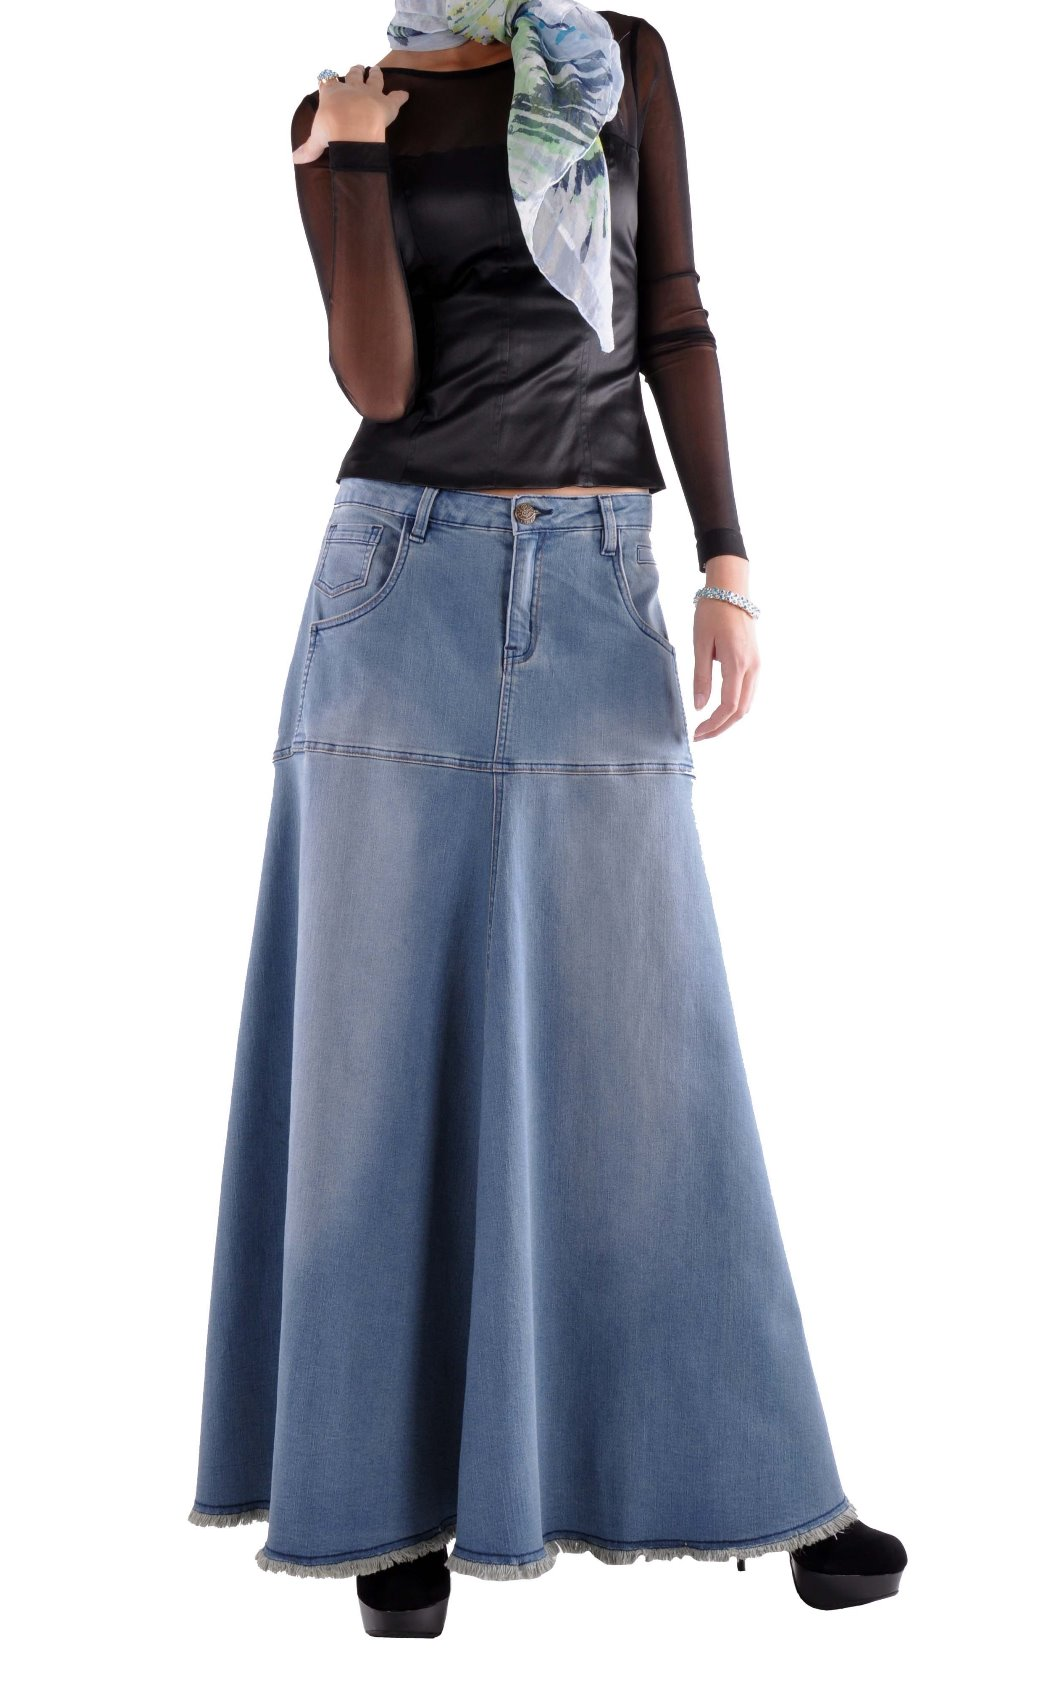 Free shipping BOTH ways on denim skirts, from our vast selection of styles. Fast delivery, and 24/7/ real-person service with a smile. Click or call